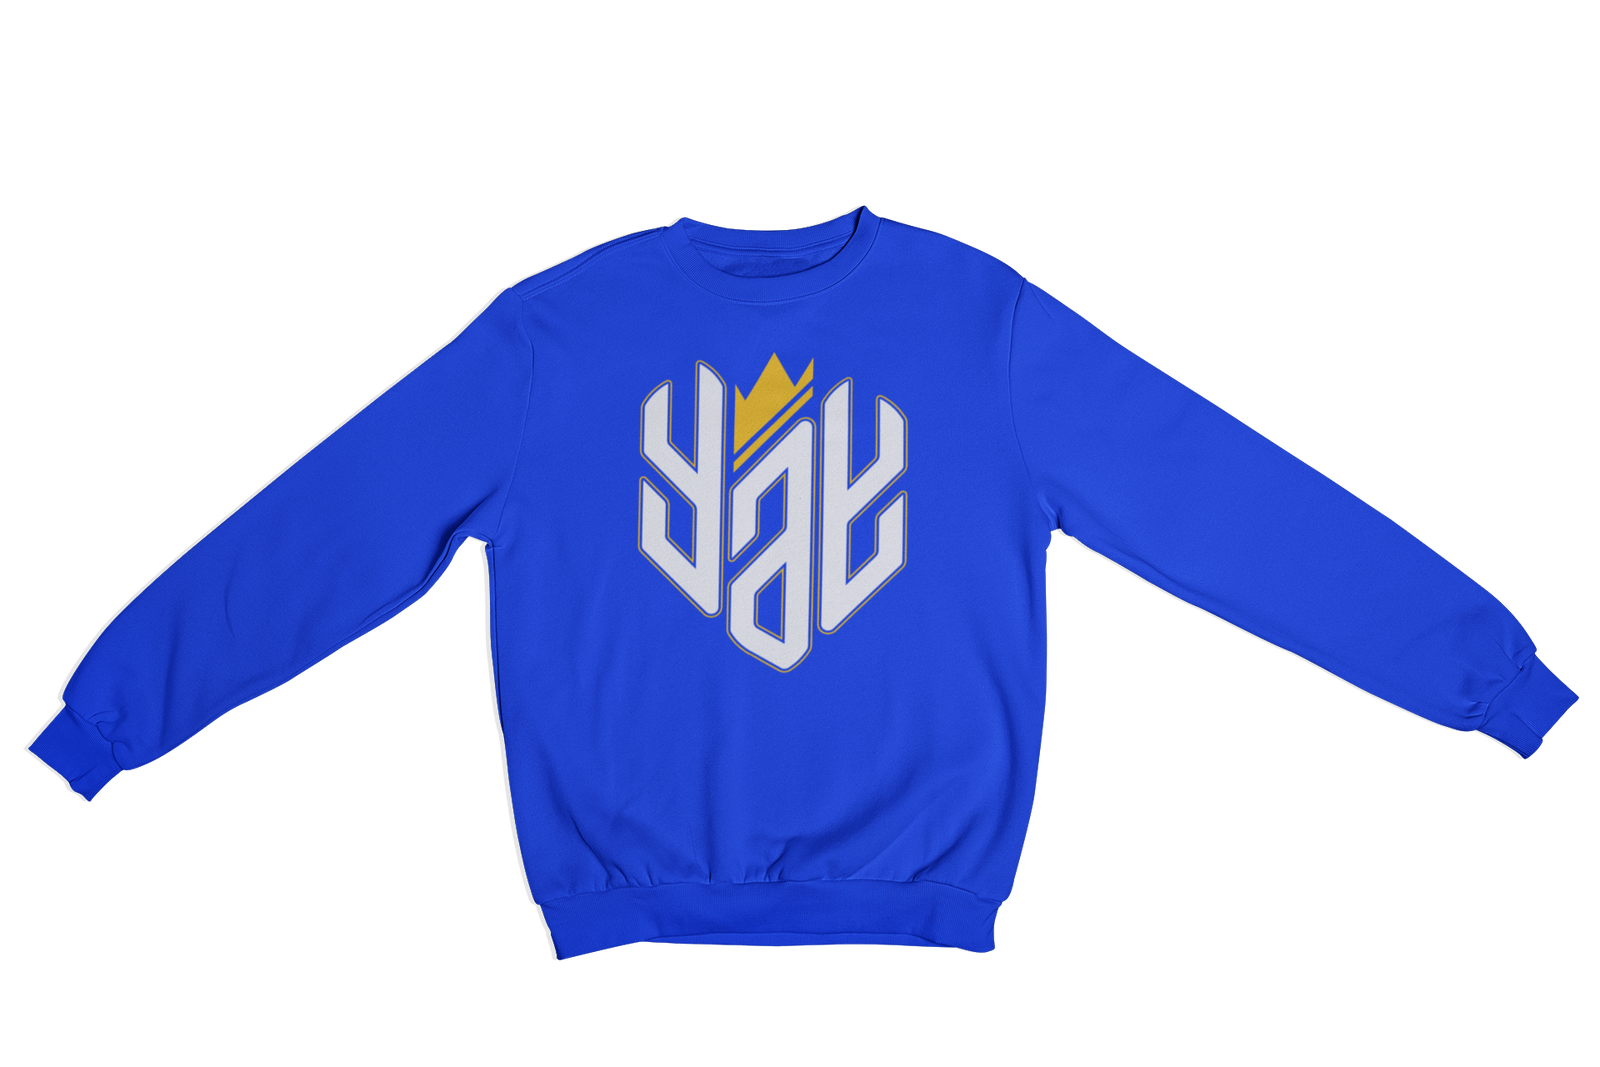 Crowned YAY Crewneck Sweatshirt